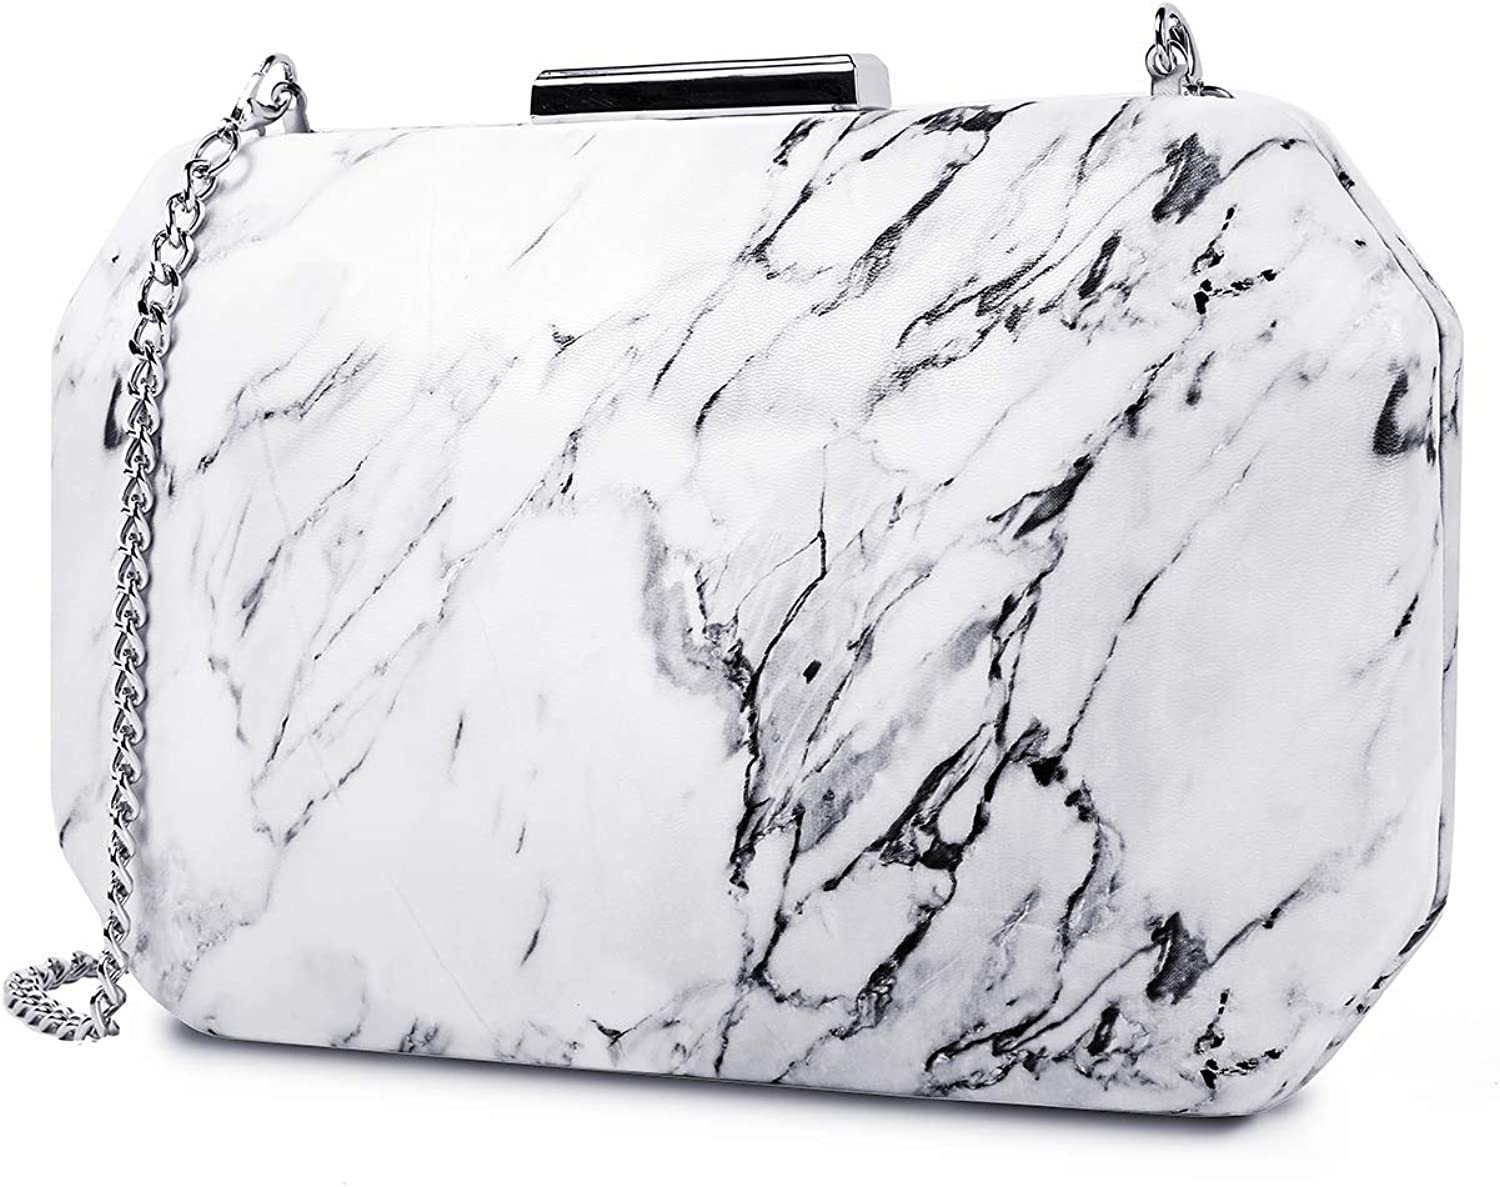 Two the nines Women's Floral Print Satin Evening Bag Thin Chain Hardcase Purses Clutch Purses for women